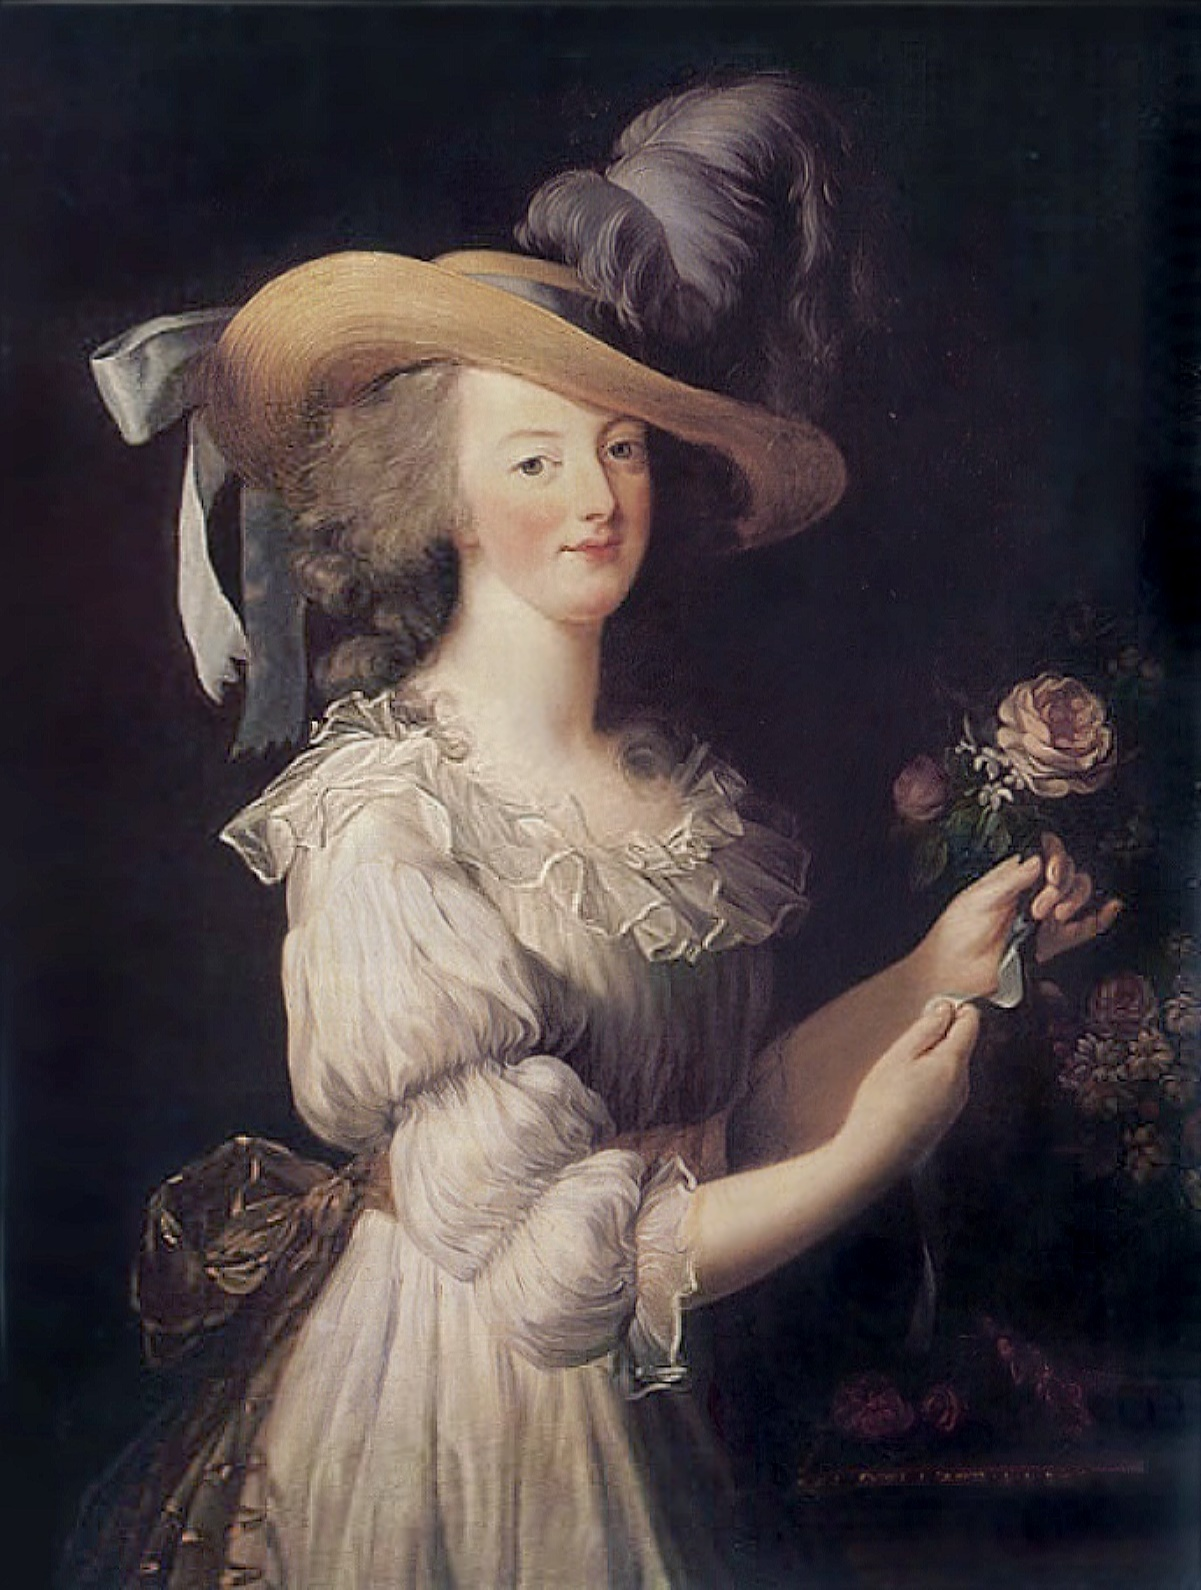 women s fashion during and after the french revolution 1790 to marie antoinette en chemise by Élisabeth vigée lebrun 1783